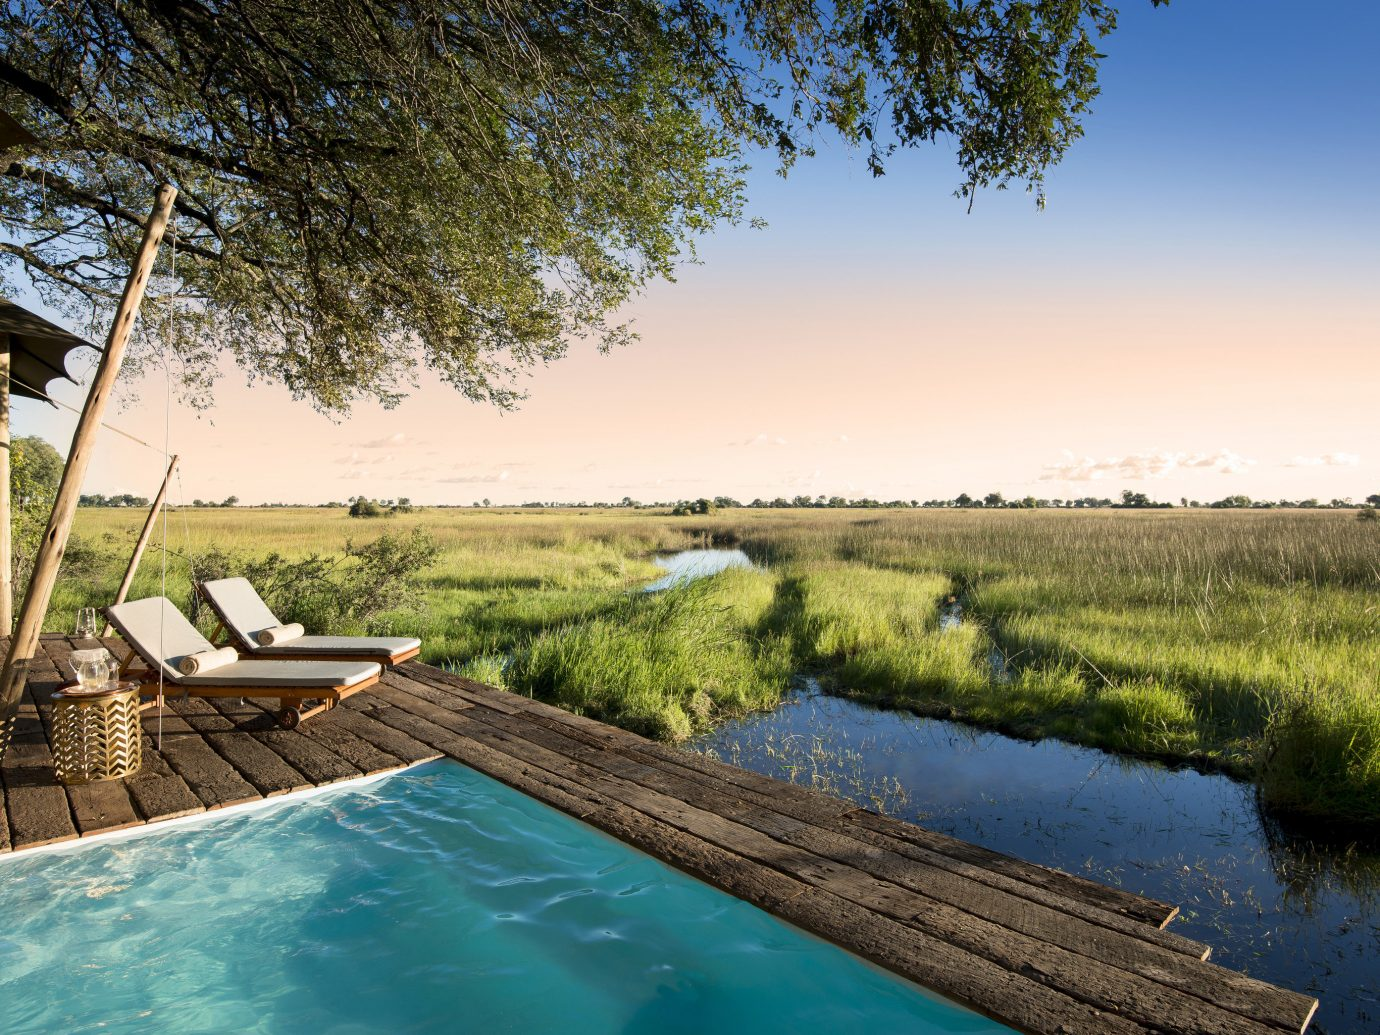 Trip Ideas tree outdoor water grass swimming pool Lake estate vacation River landscape reflection backyard pond